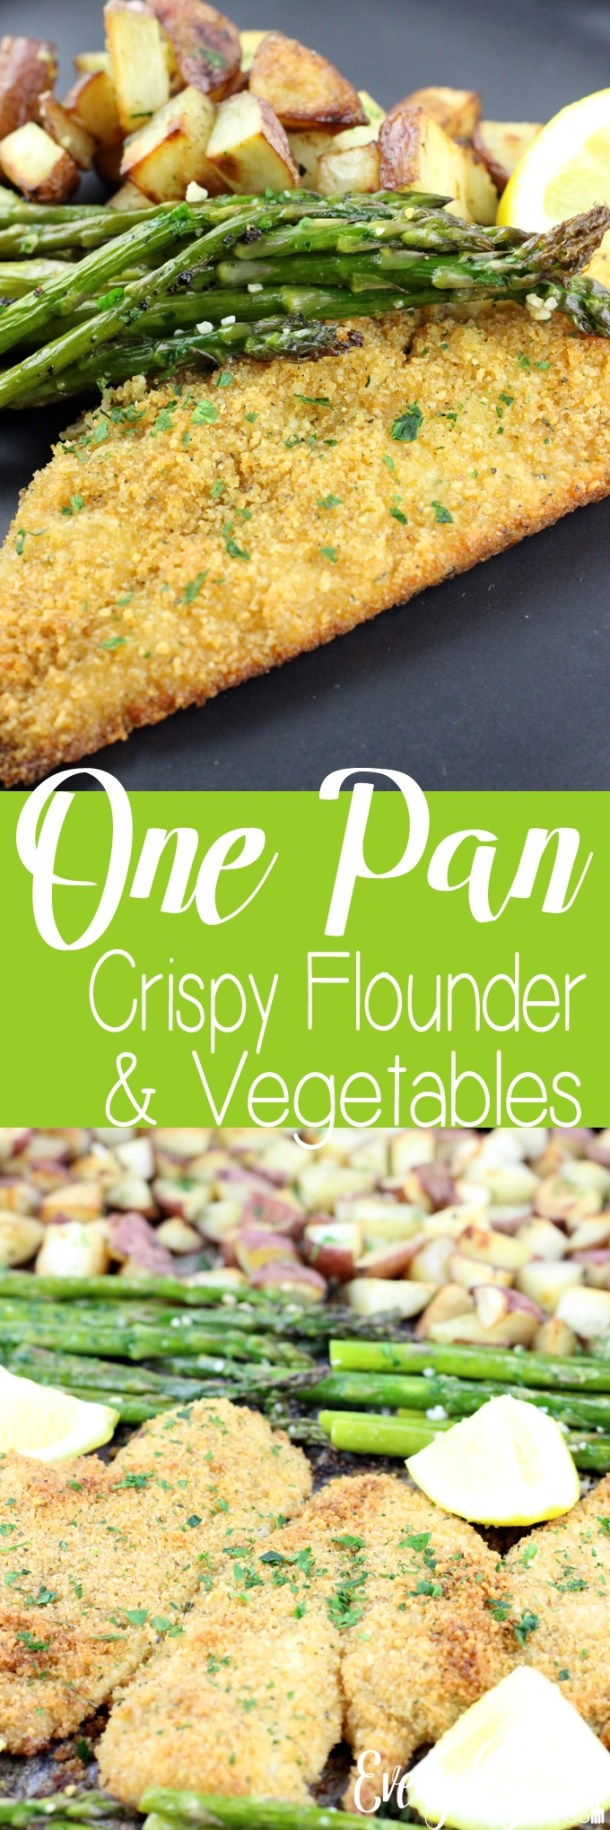 Quick, easy, and all made on a single pan. This One Pan Crispy Flounder & Vegetables is a perfect dish any night of the week. | EverydayMadeFresh.com